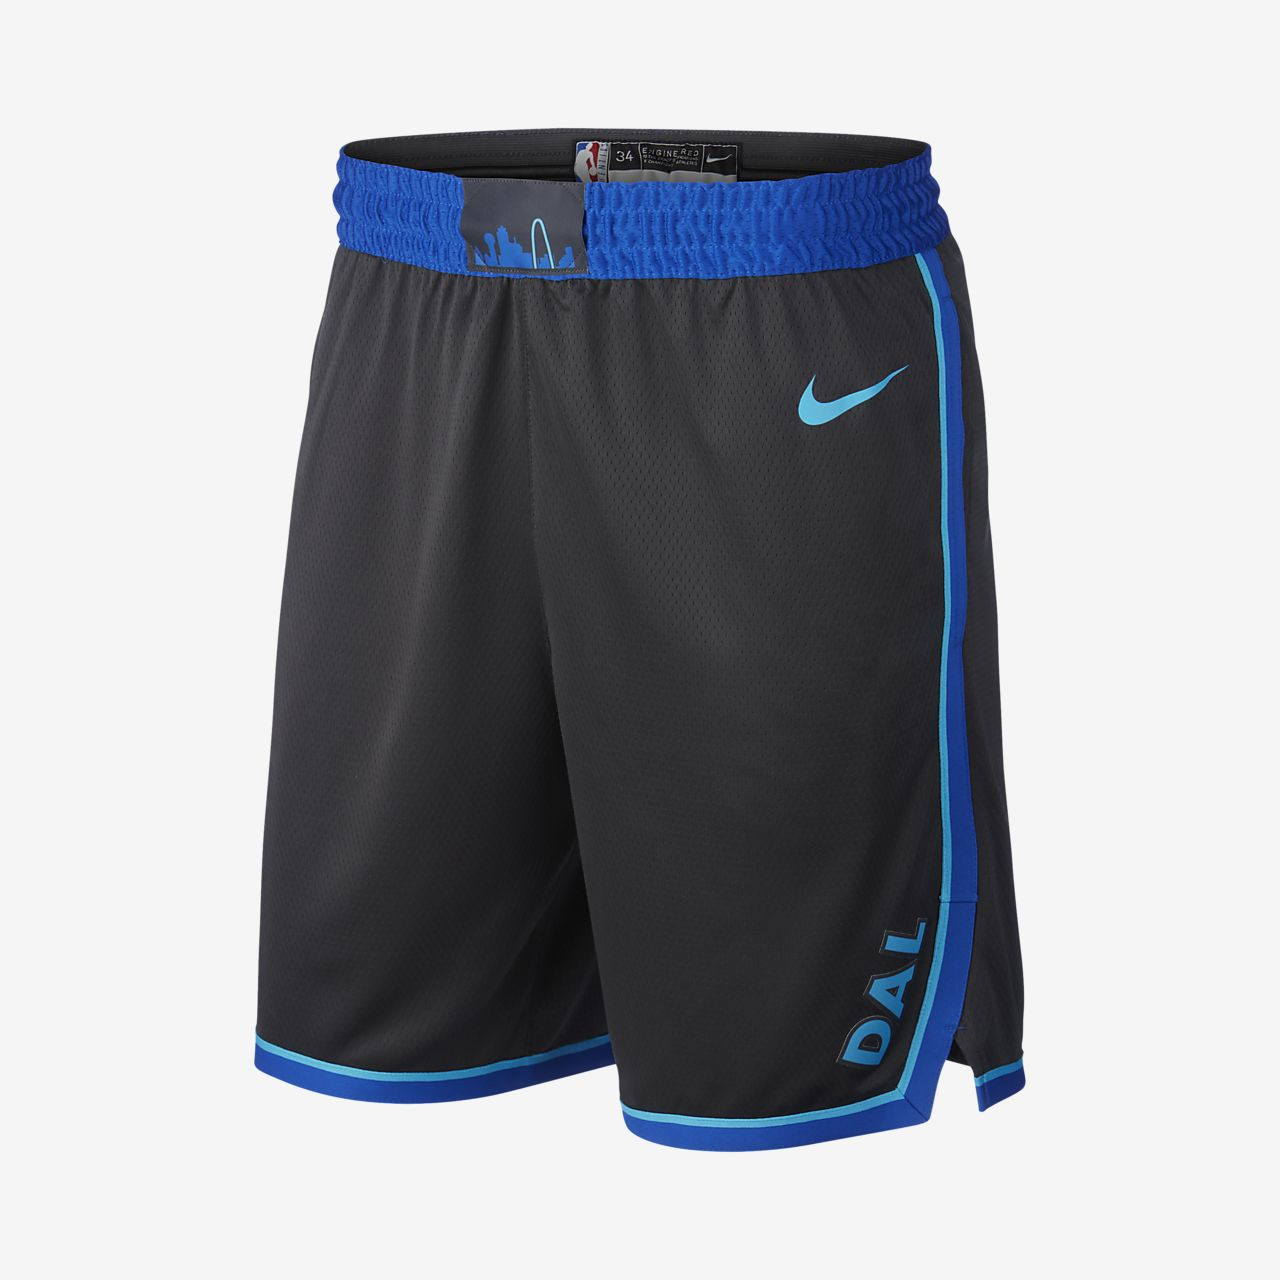 Dallas Mavericks City Edition Swingman Pantalón corto de la NBA Nike -  Hombre 430ee9abfb7